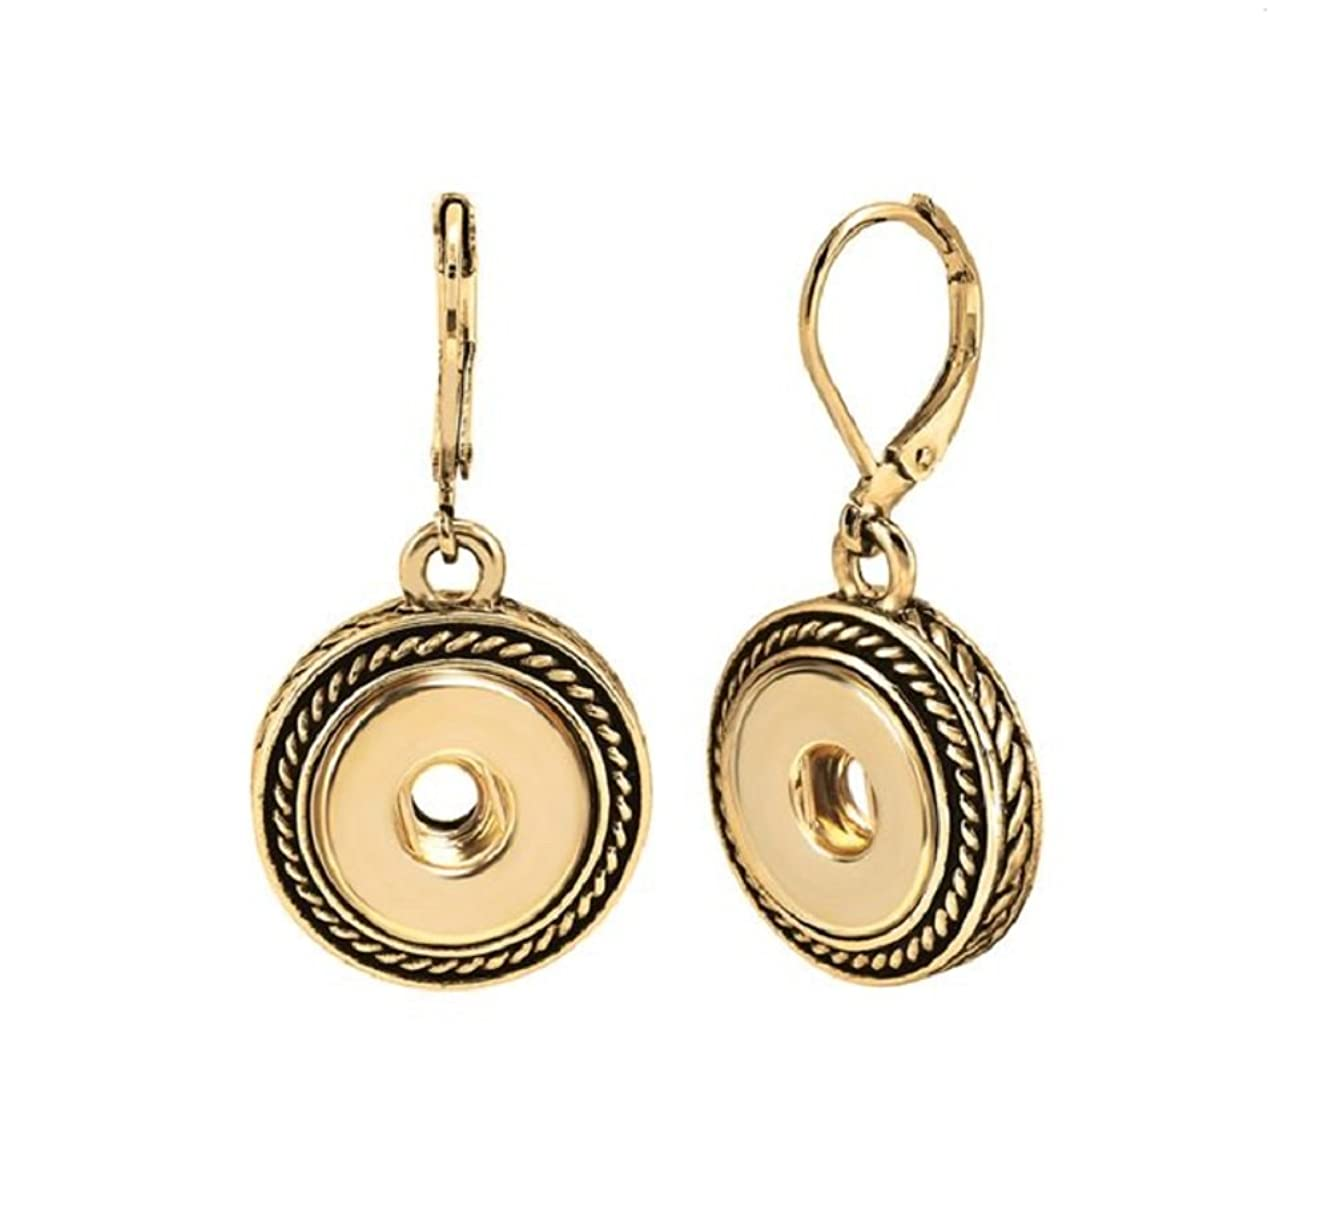 Ginger Snaps PETITE (Simulated) Gold Rope Earrings GP95-02 Interchangeable Jewelry